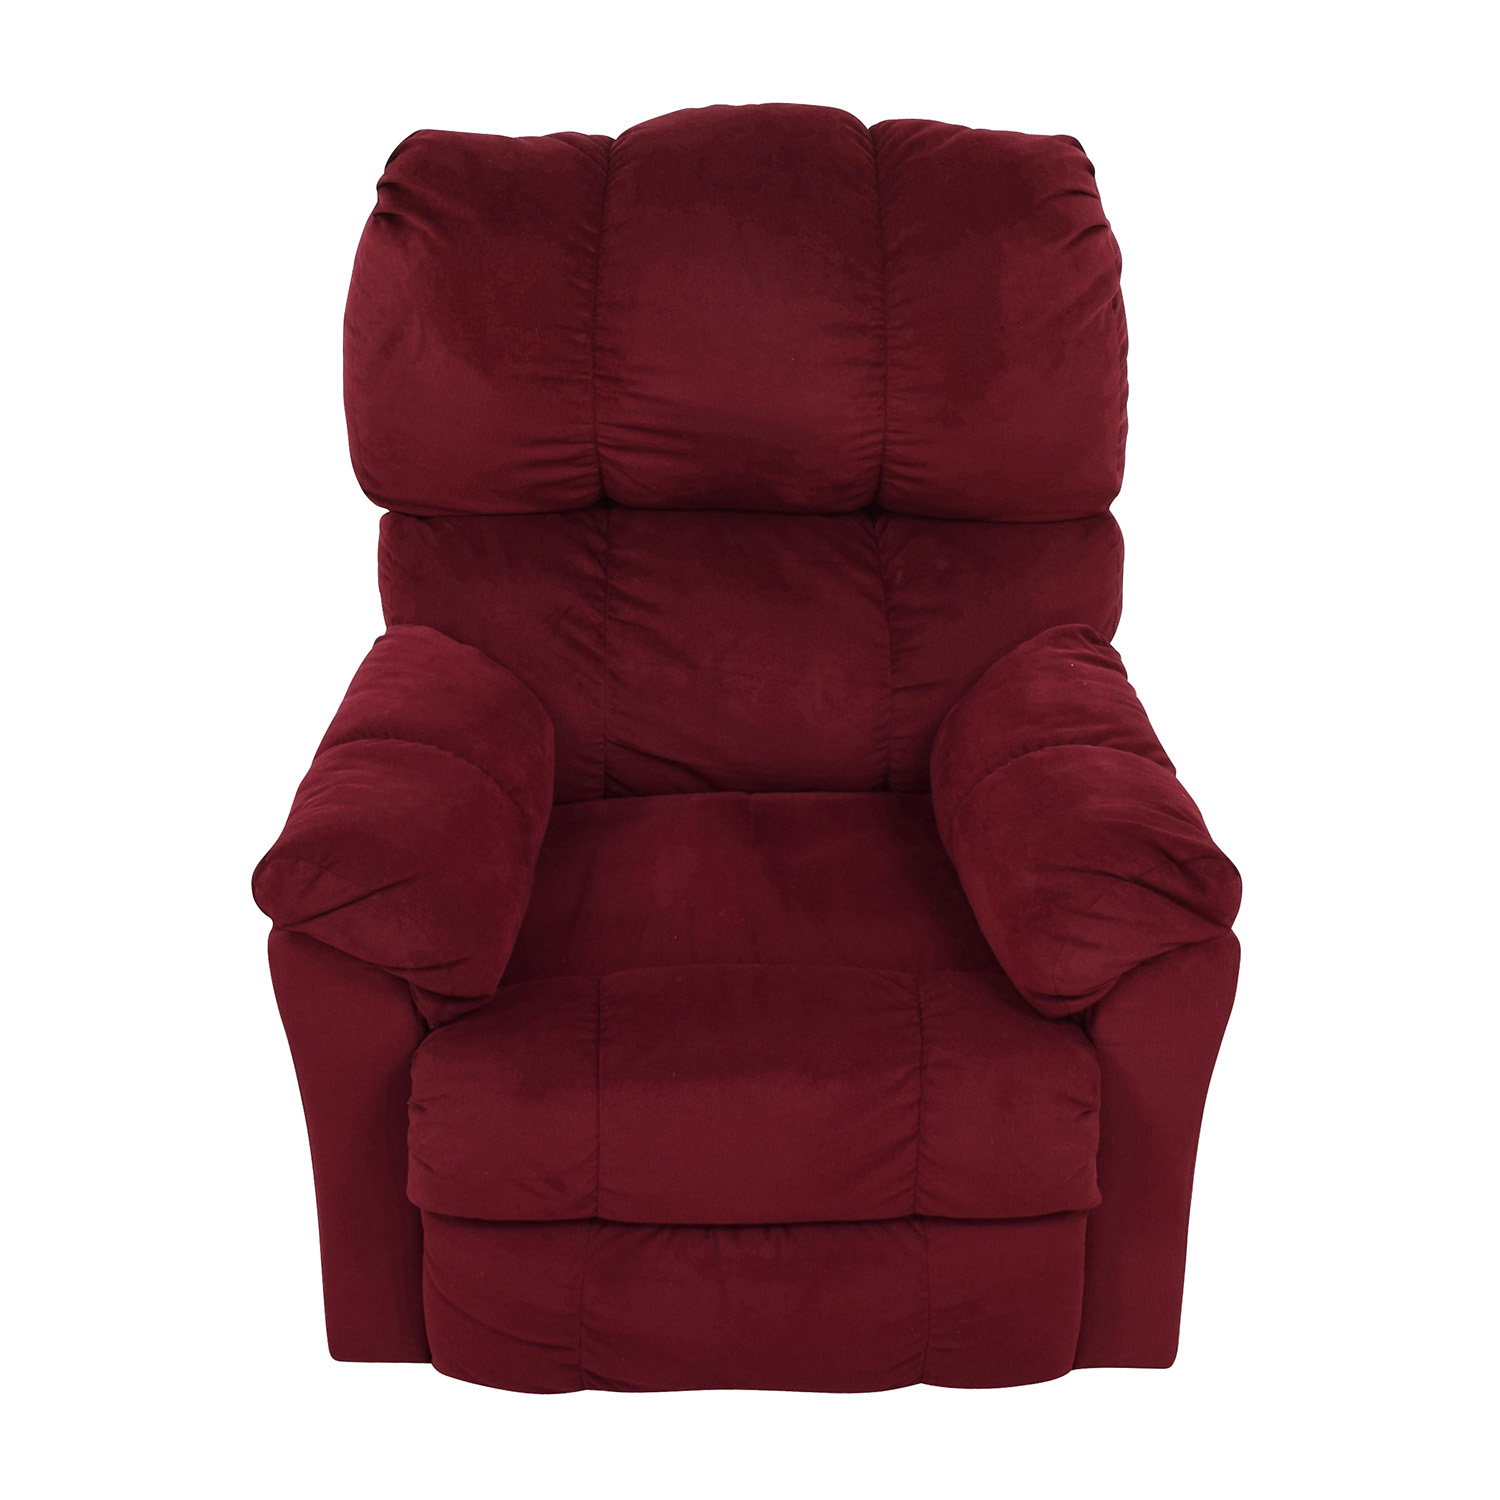 Macys Macys Red Recliner Arm Chair nyc